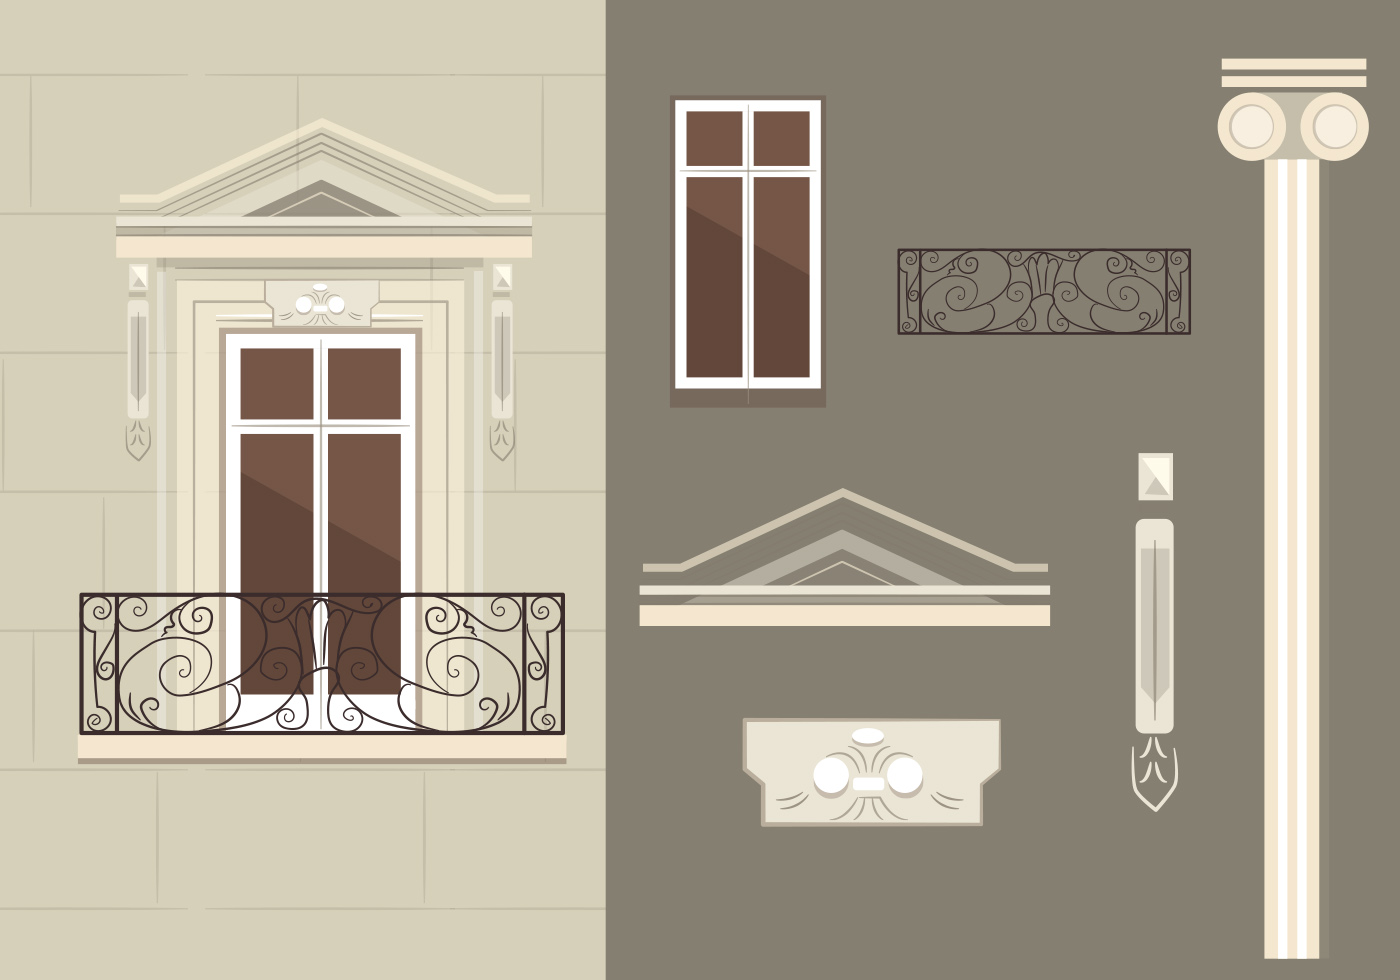 french balcony vectors download free vector art stock